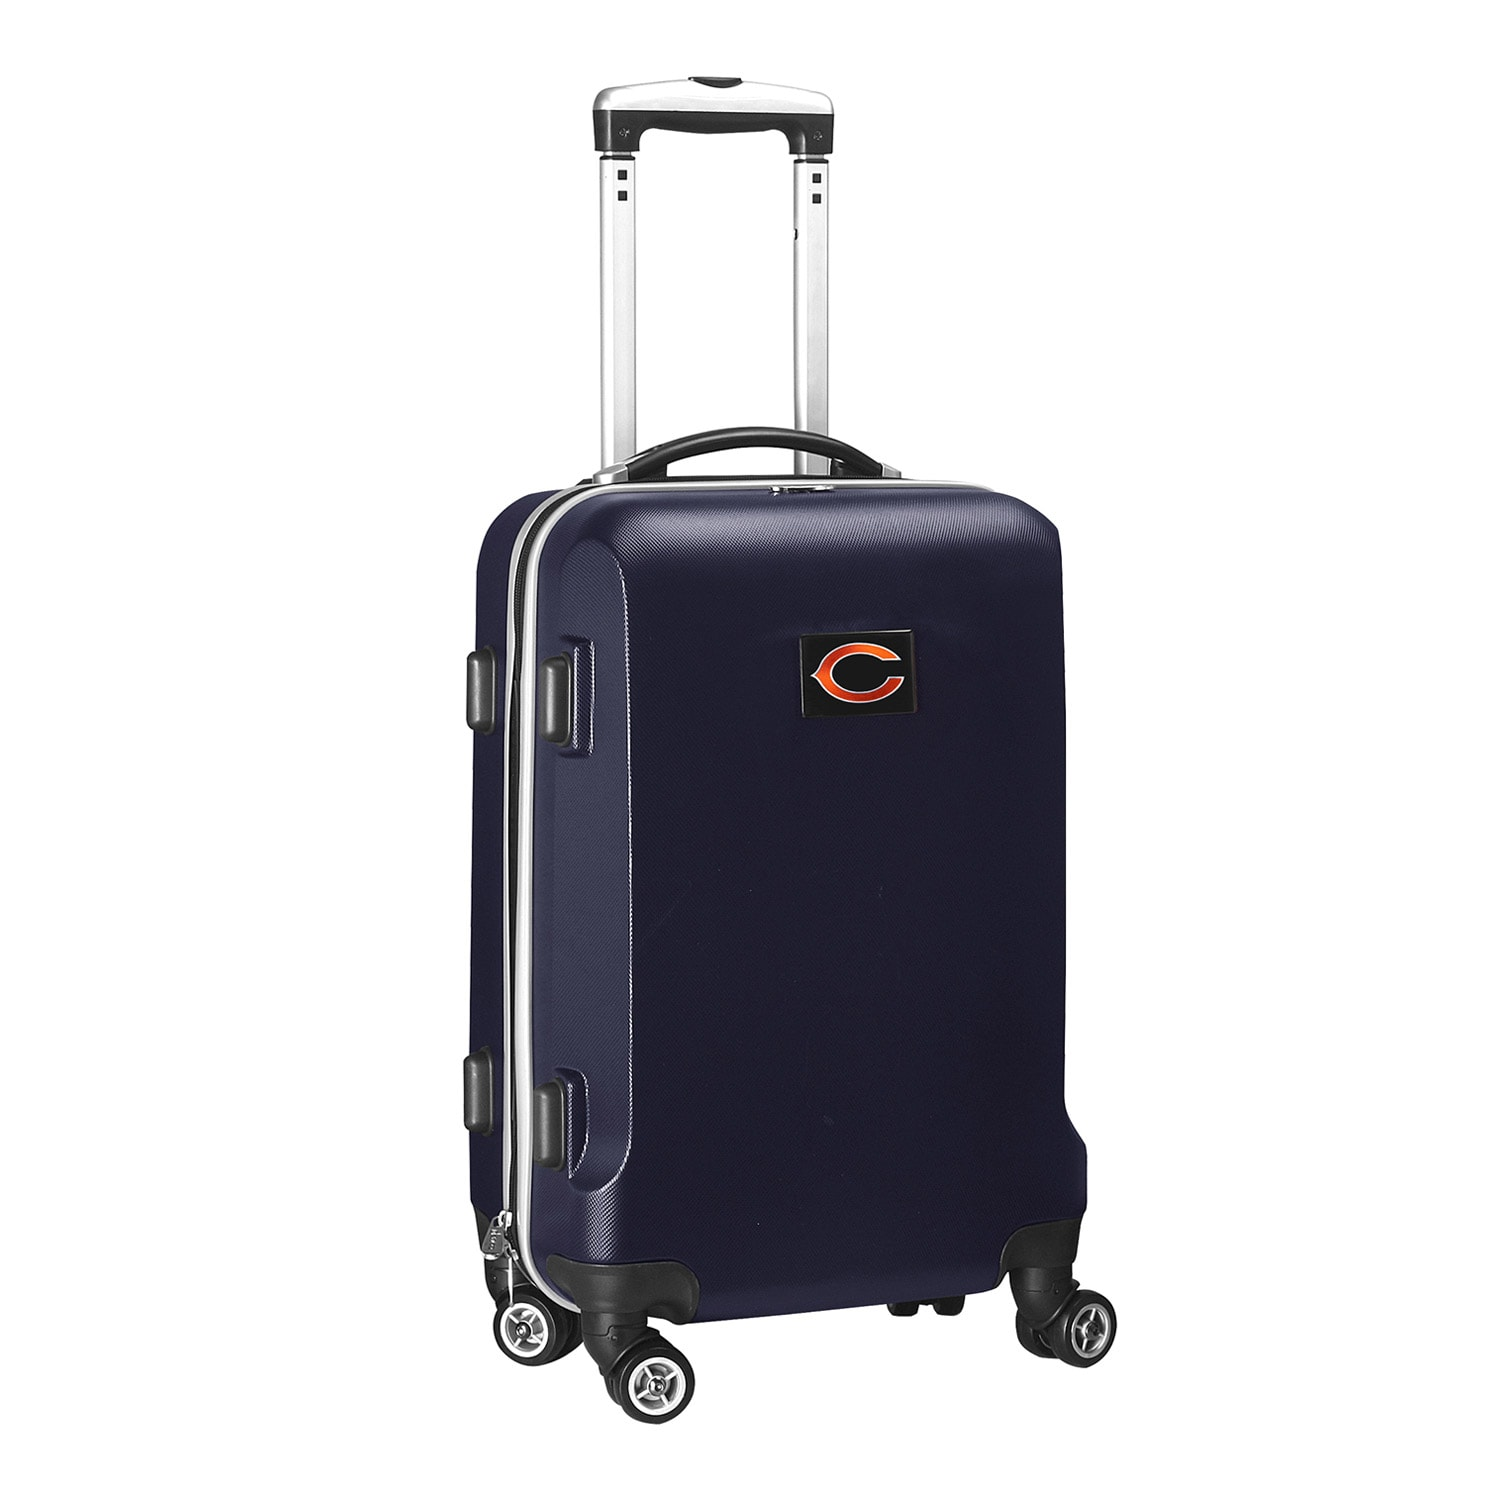 "Chicago Bears 20"" 8-Wheel Hardcase Spinner Carry-On - Navy"